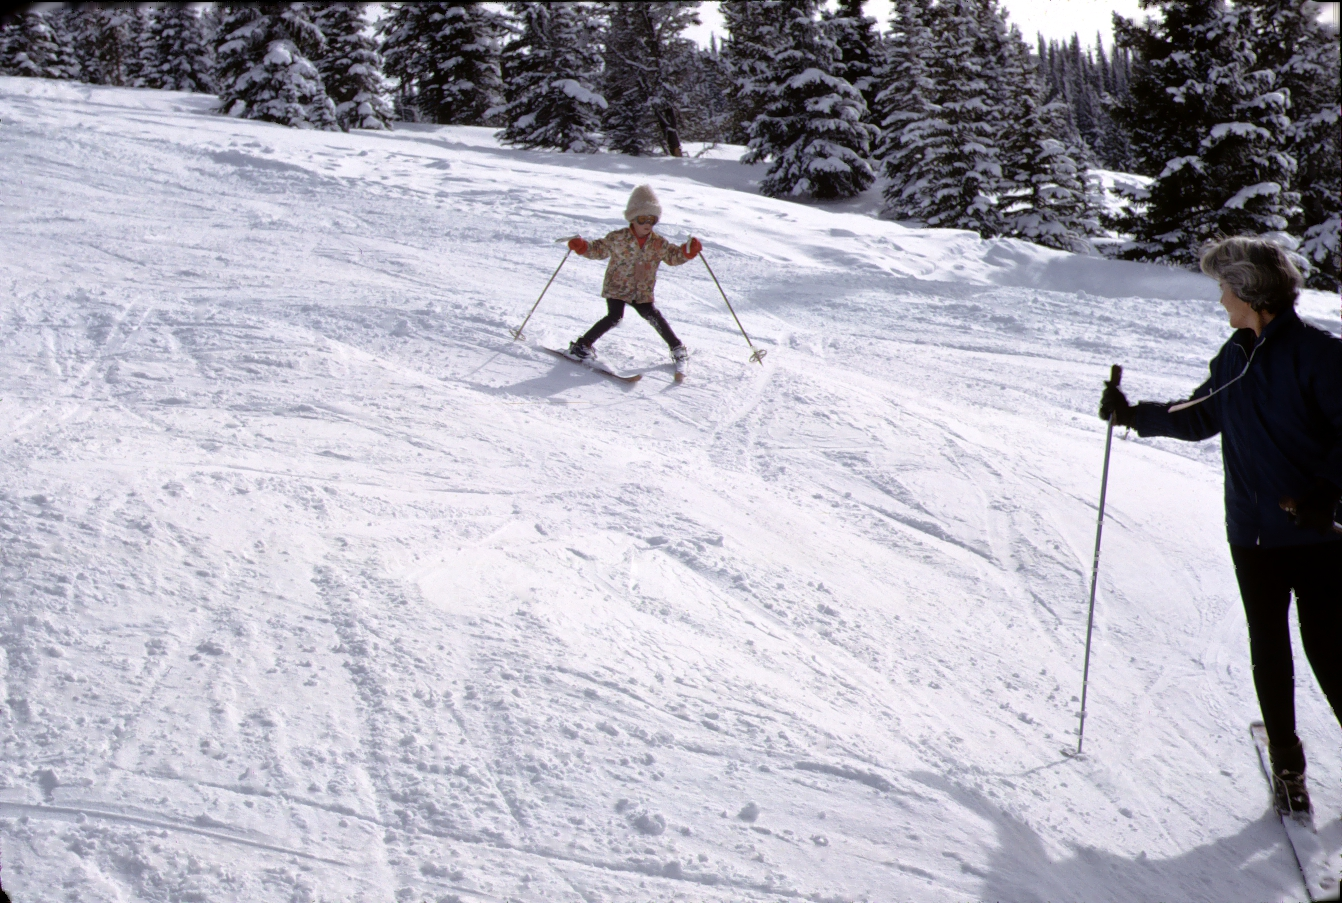 Vintage photo of a little girl skiing down a mountain while her mother looks on.